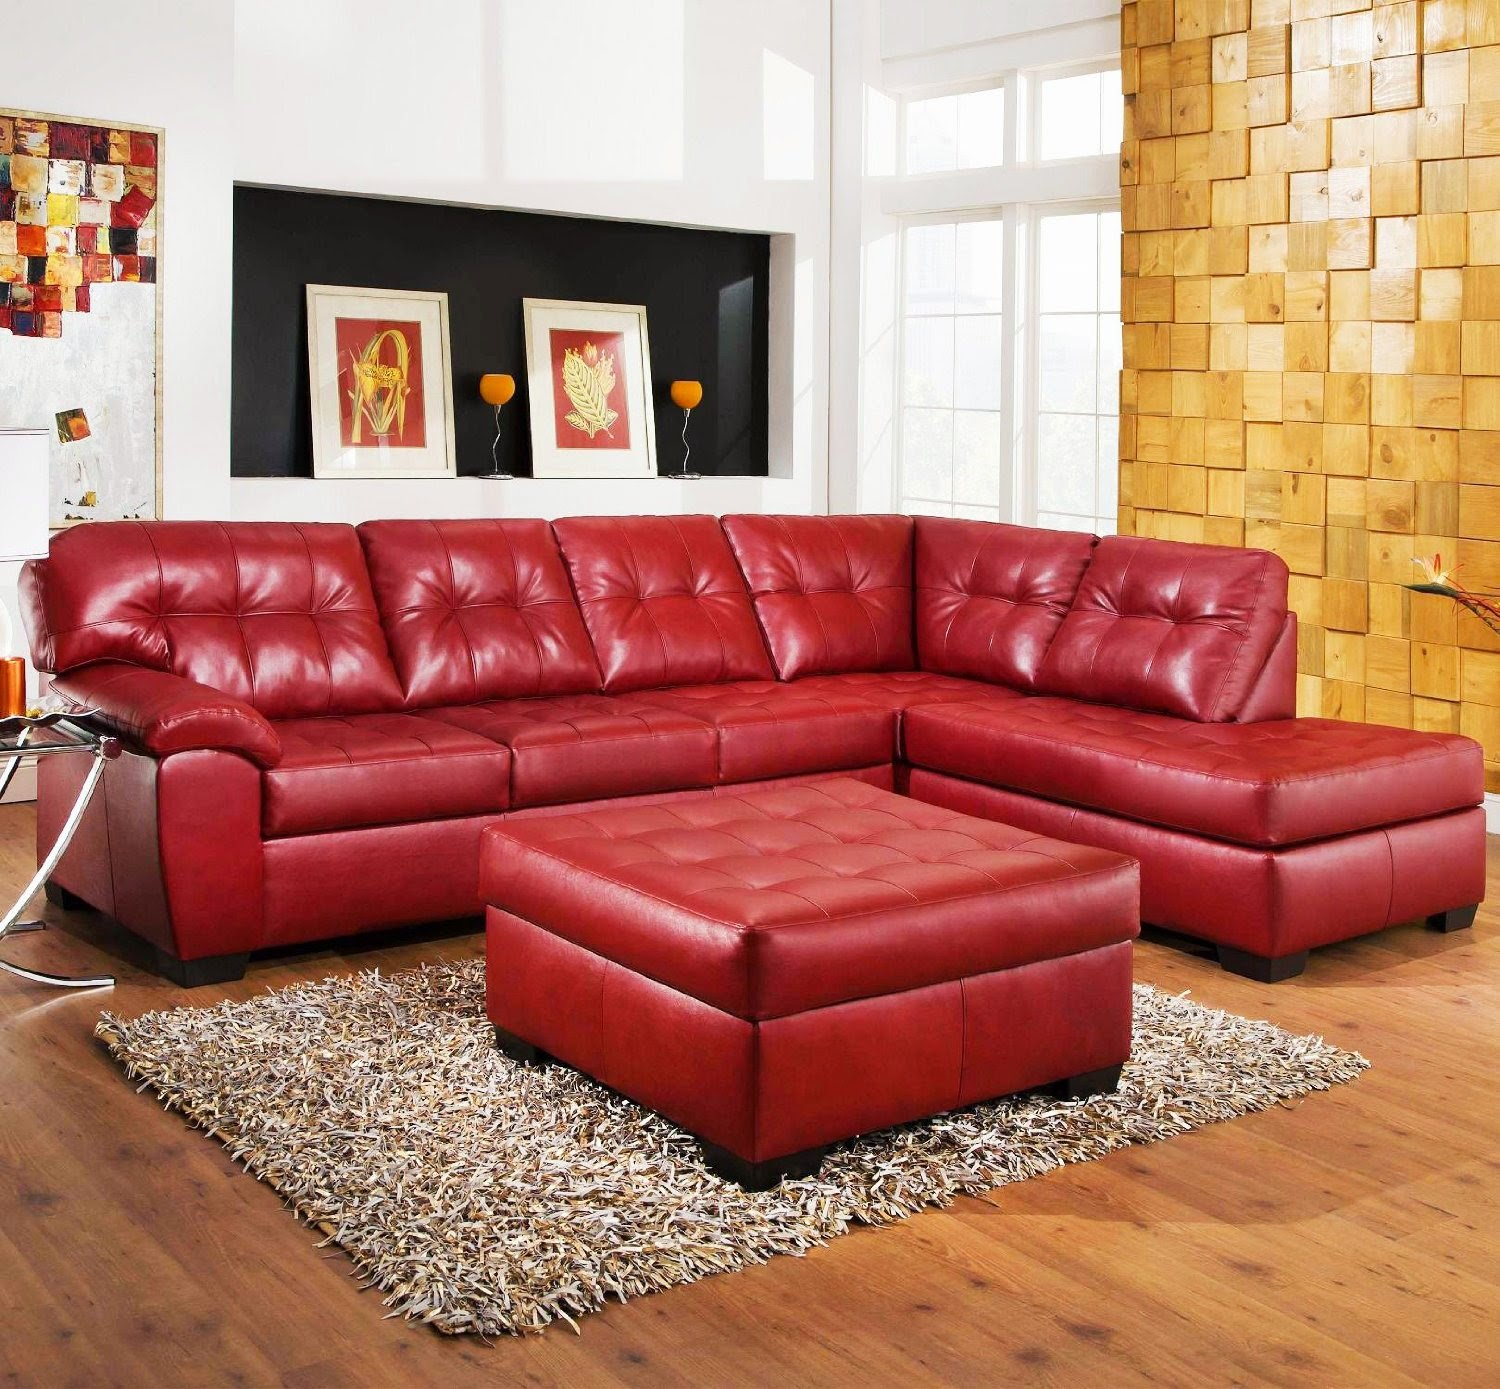 Red Couch Leather Sectional Home Gallery